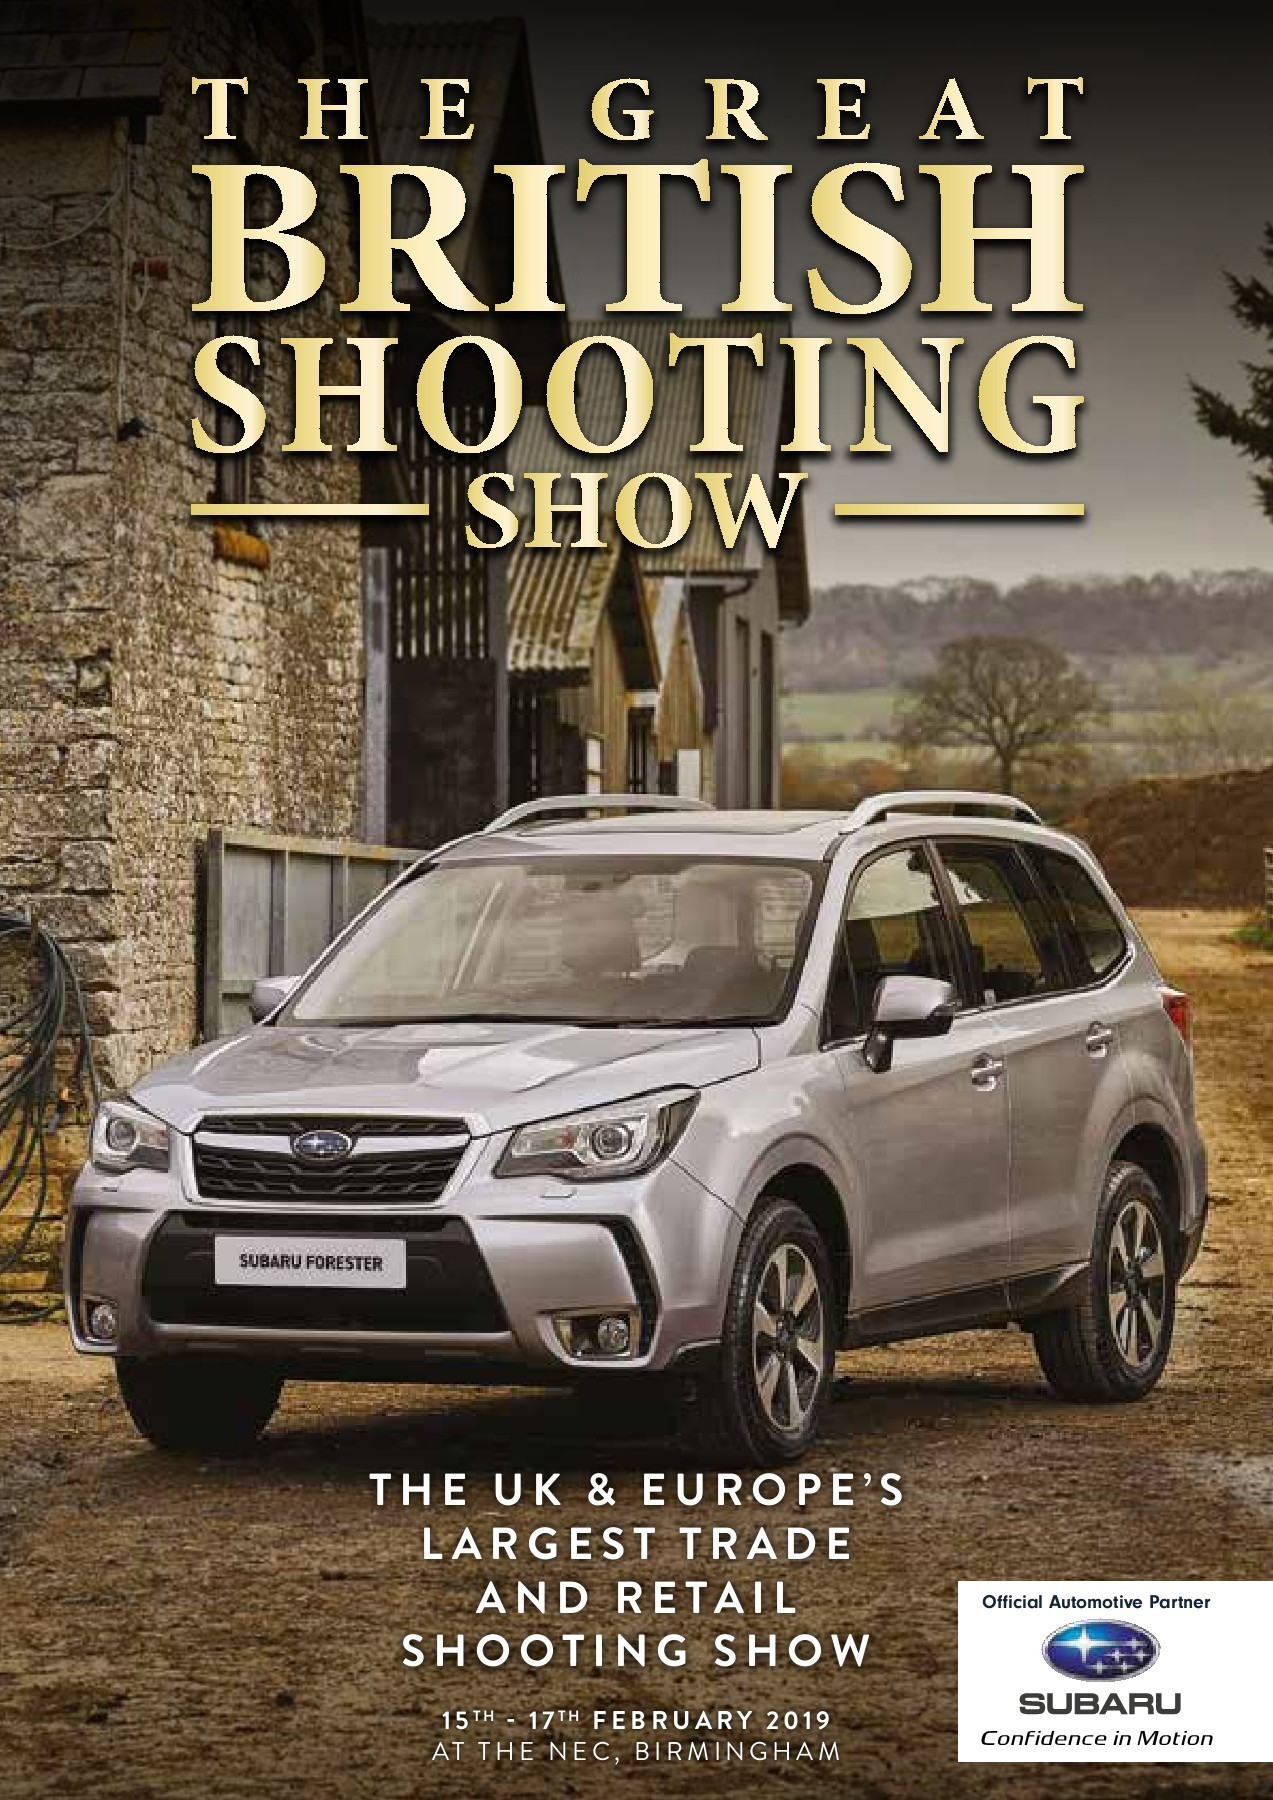 Showguide 2019 - Shooting Show